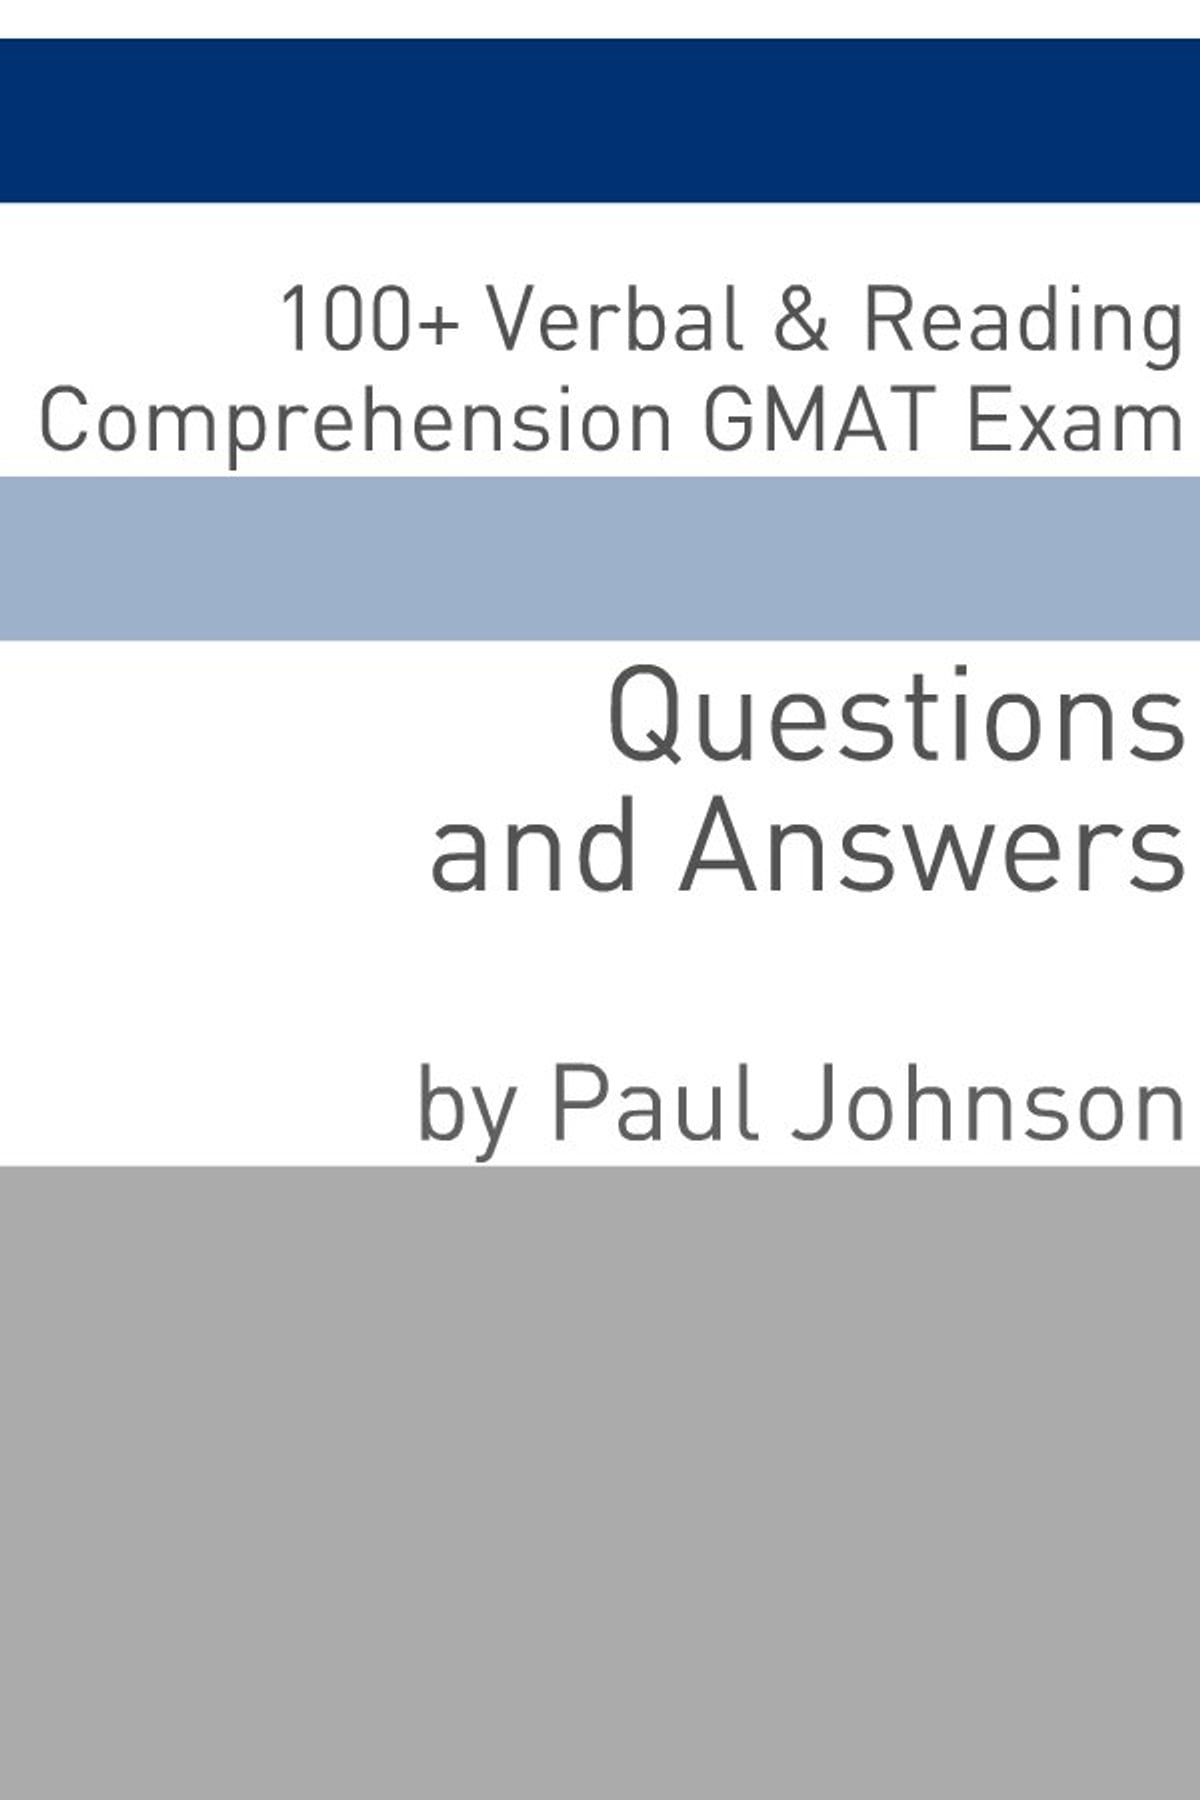 100+ Verbal & Reading Comprehension GMAT Exam Questions and Answers eBook  by Minute Help - 9781610427562 | Rakuten Kobo